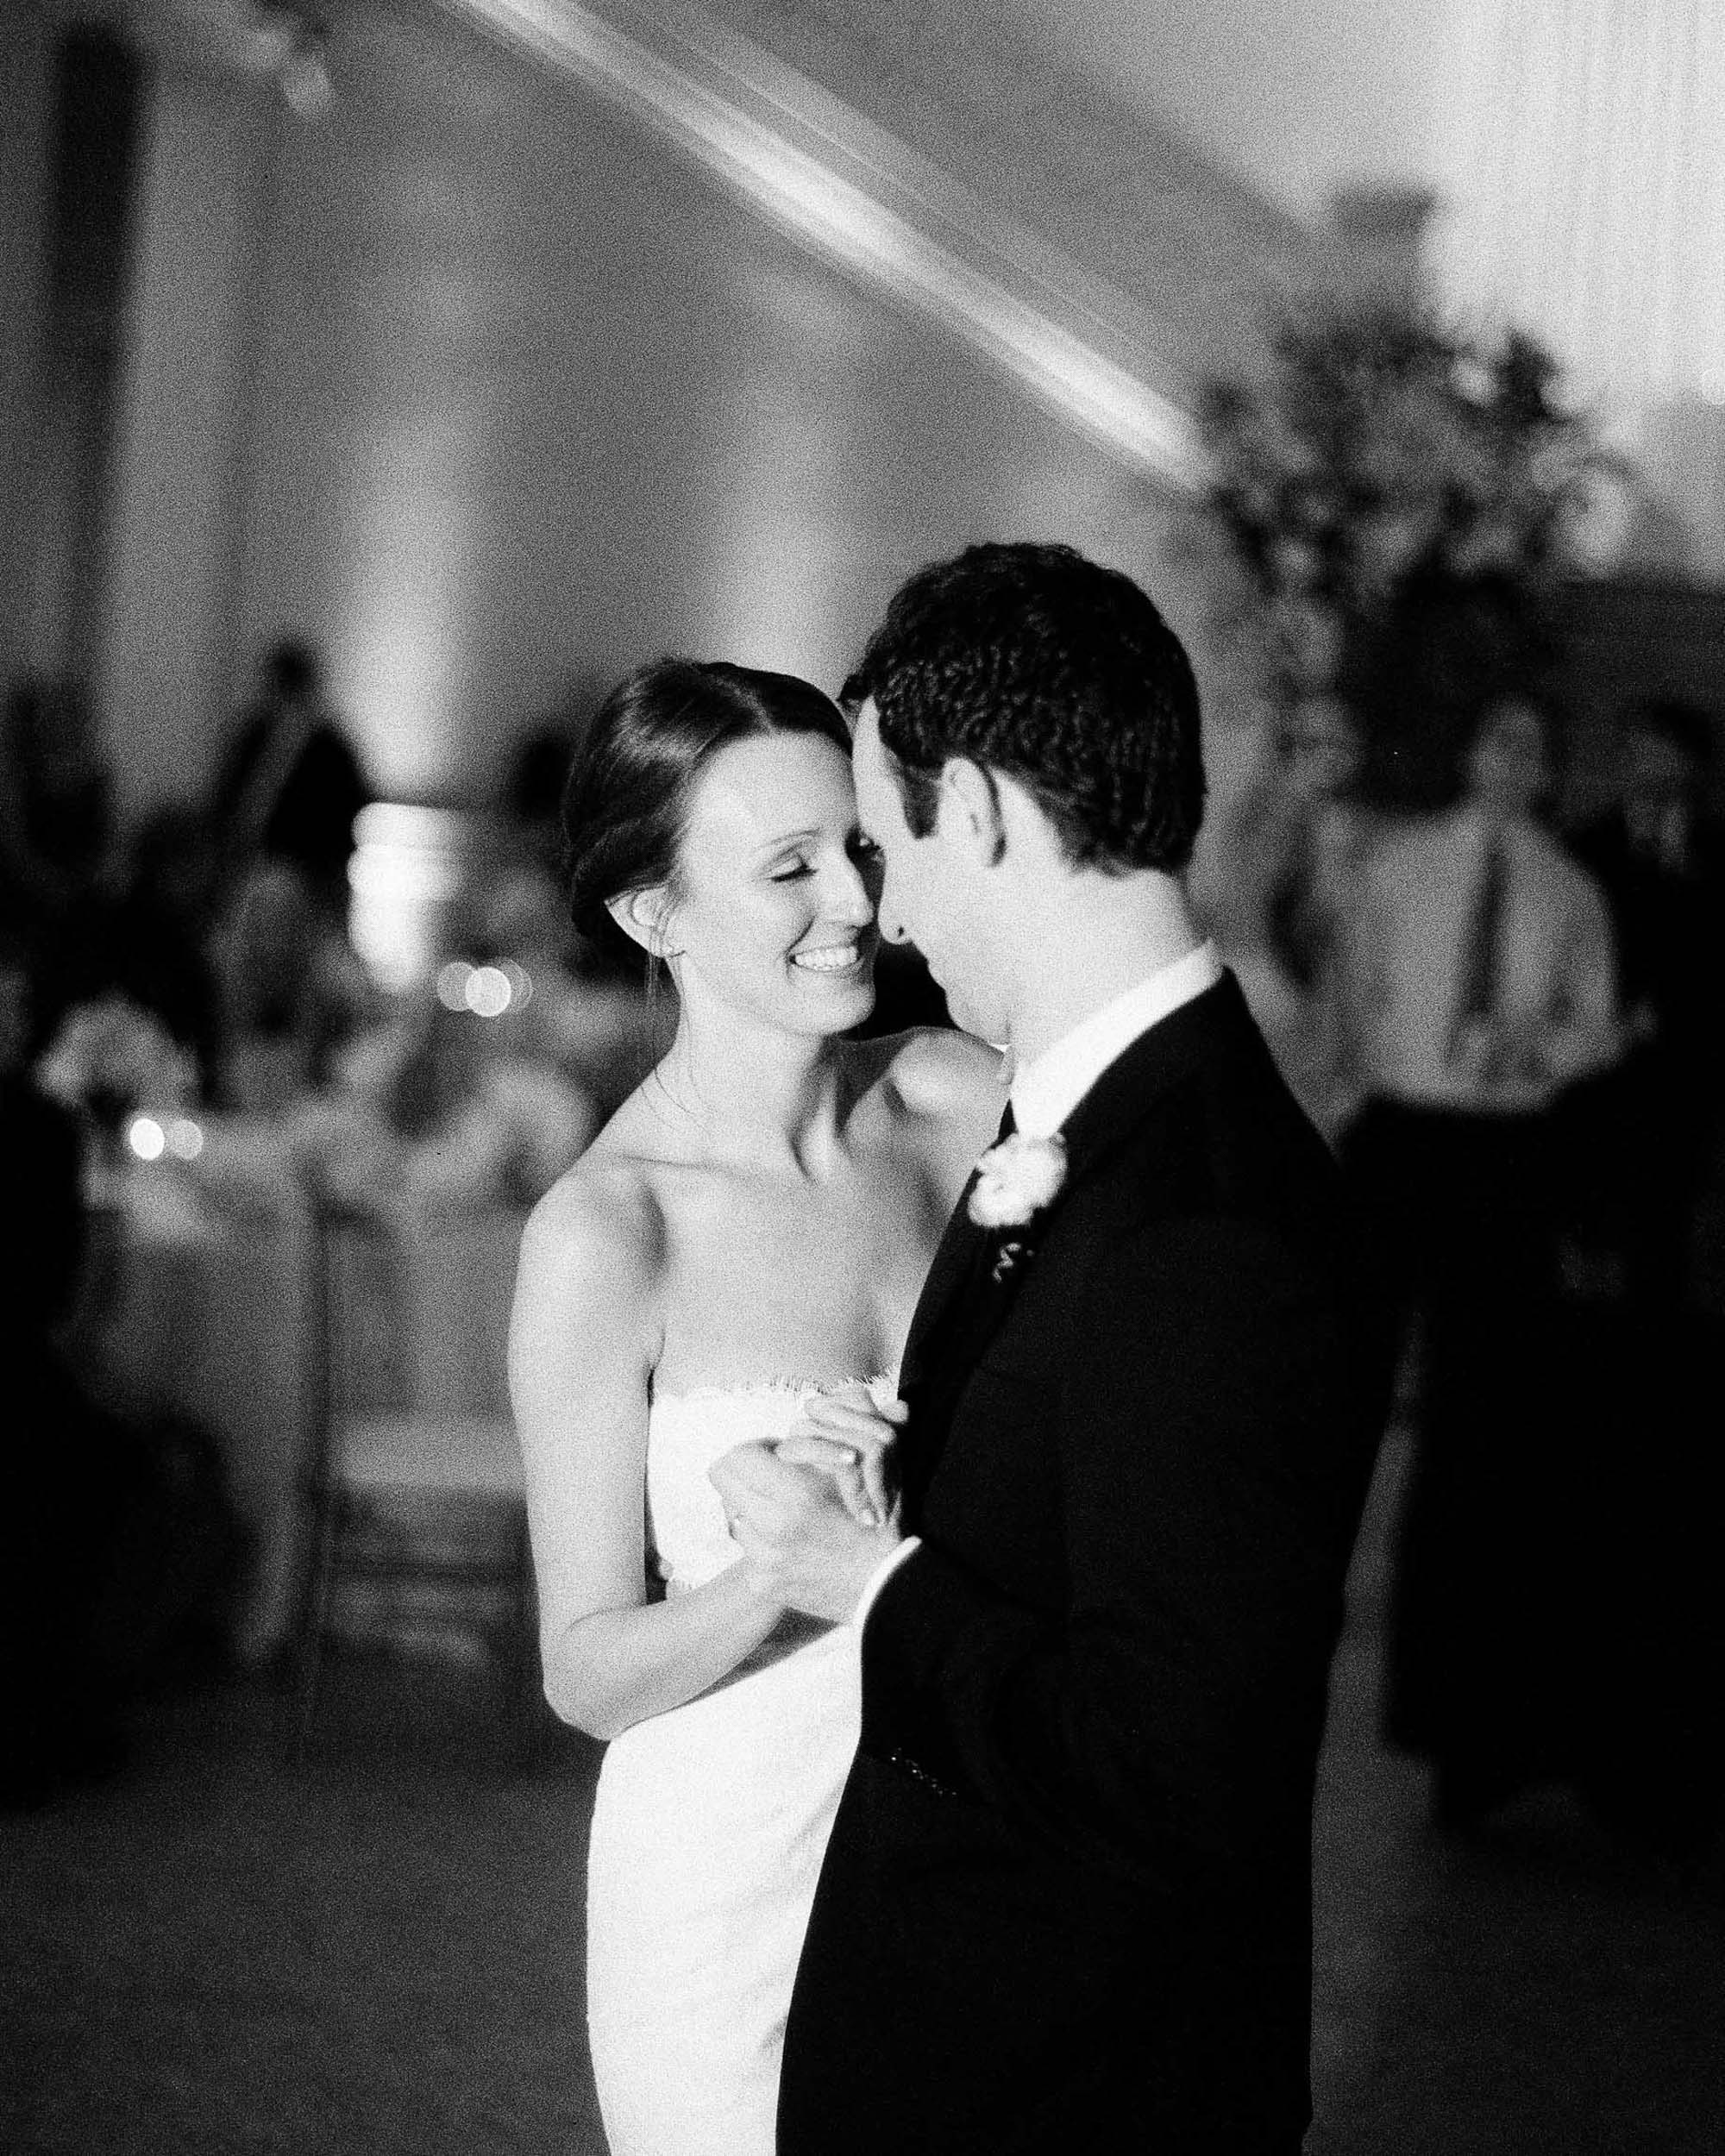 New Orleans Museum of Art Wedding Photographer 0007 - New Orleans Museum of Art